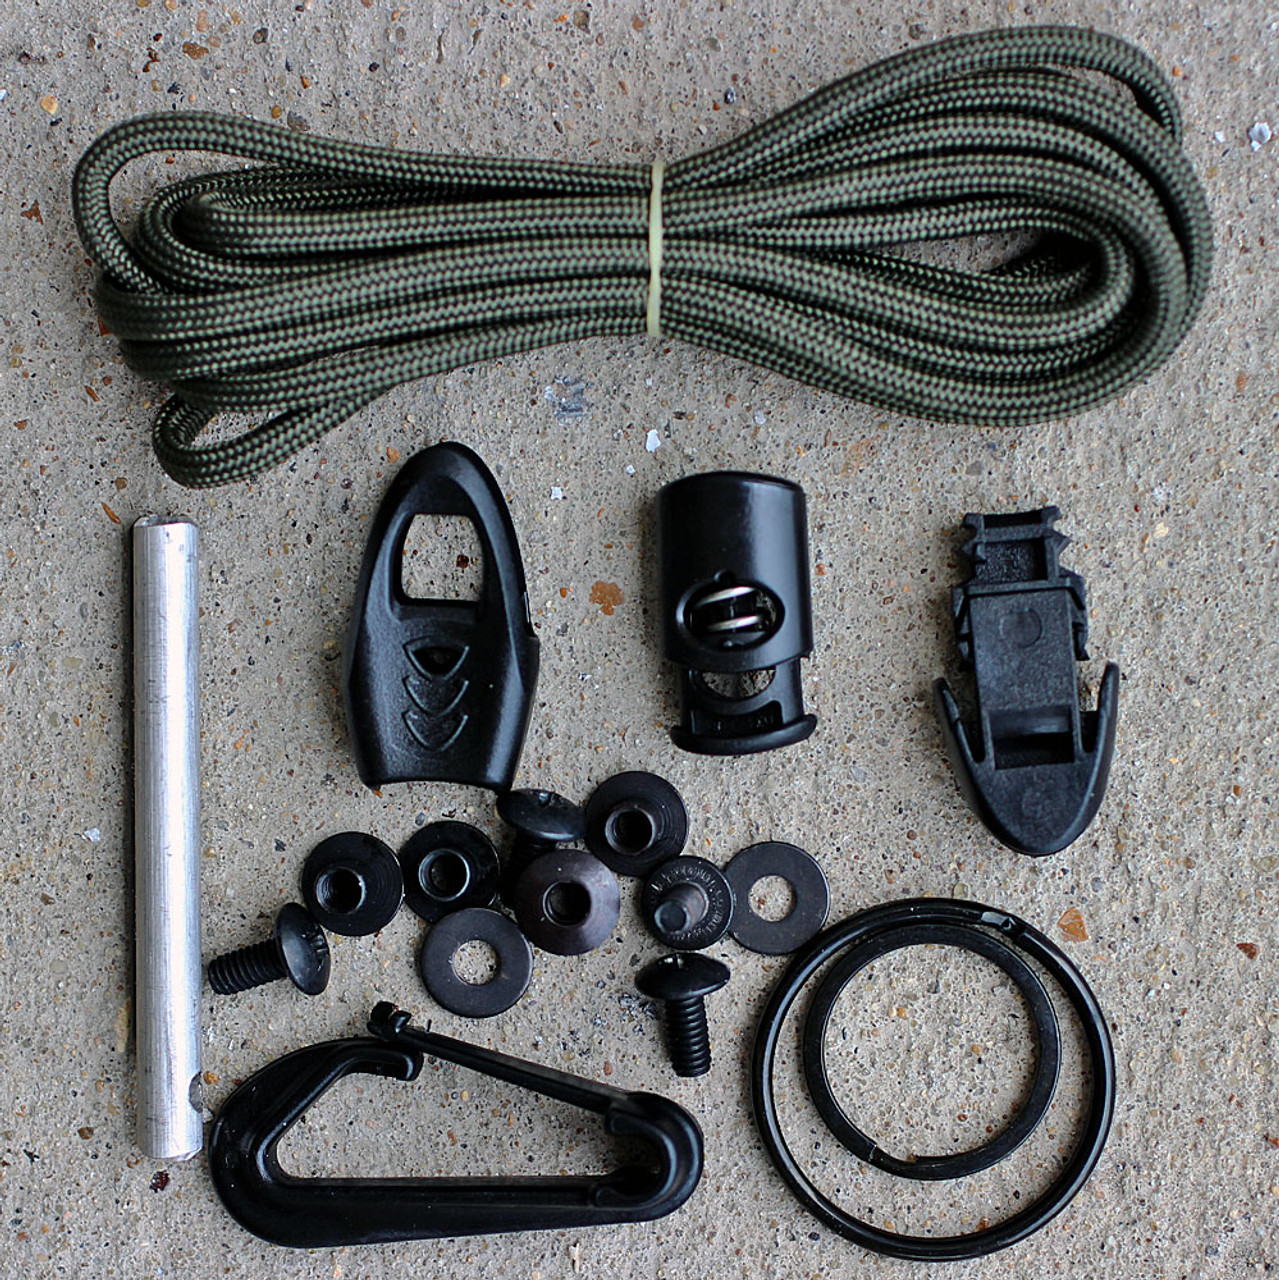 Esee Izula Kit, Gray Textured Powder Coated Finish